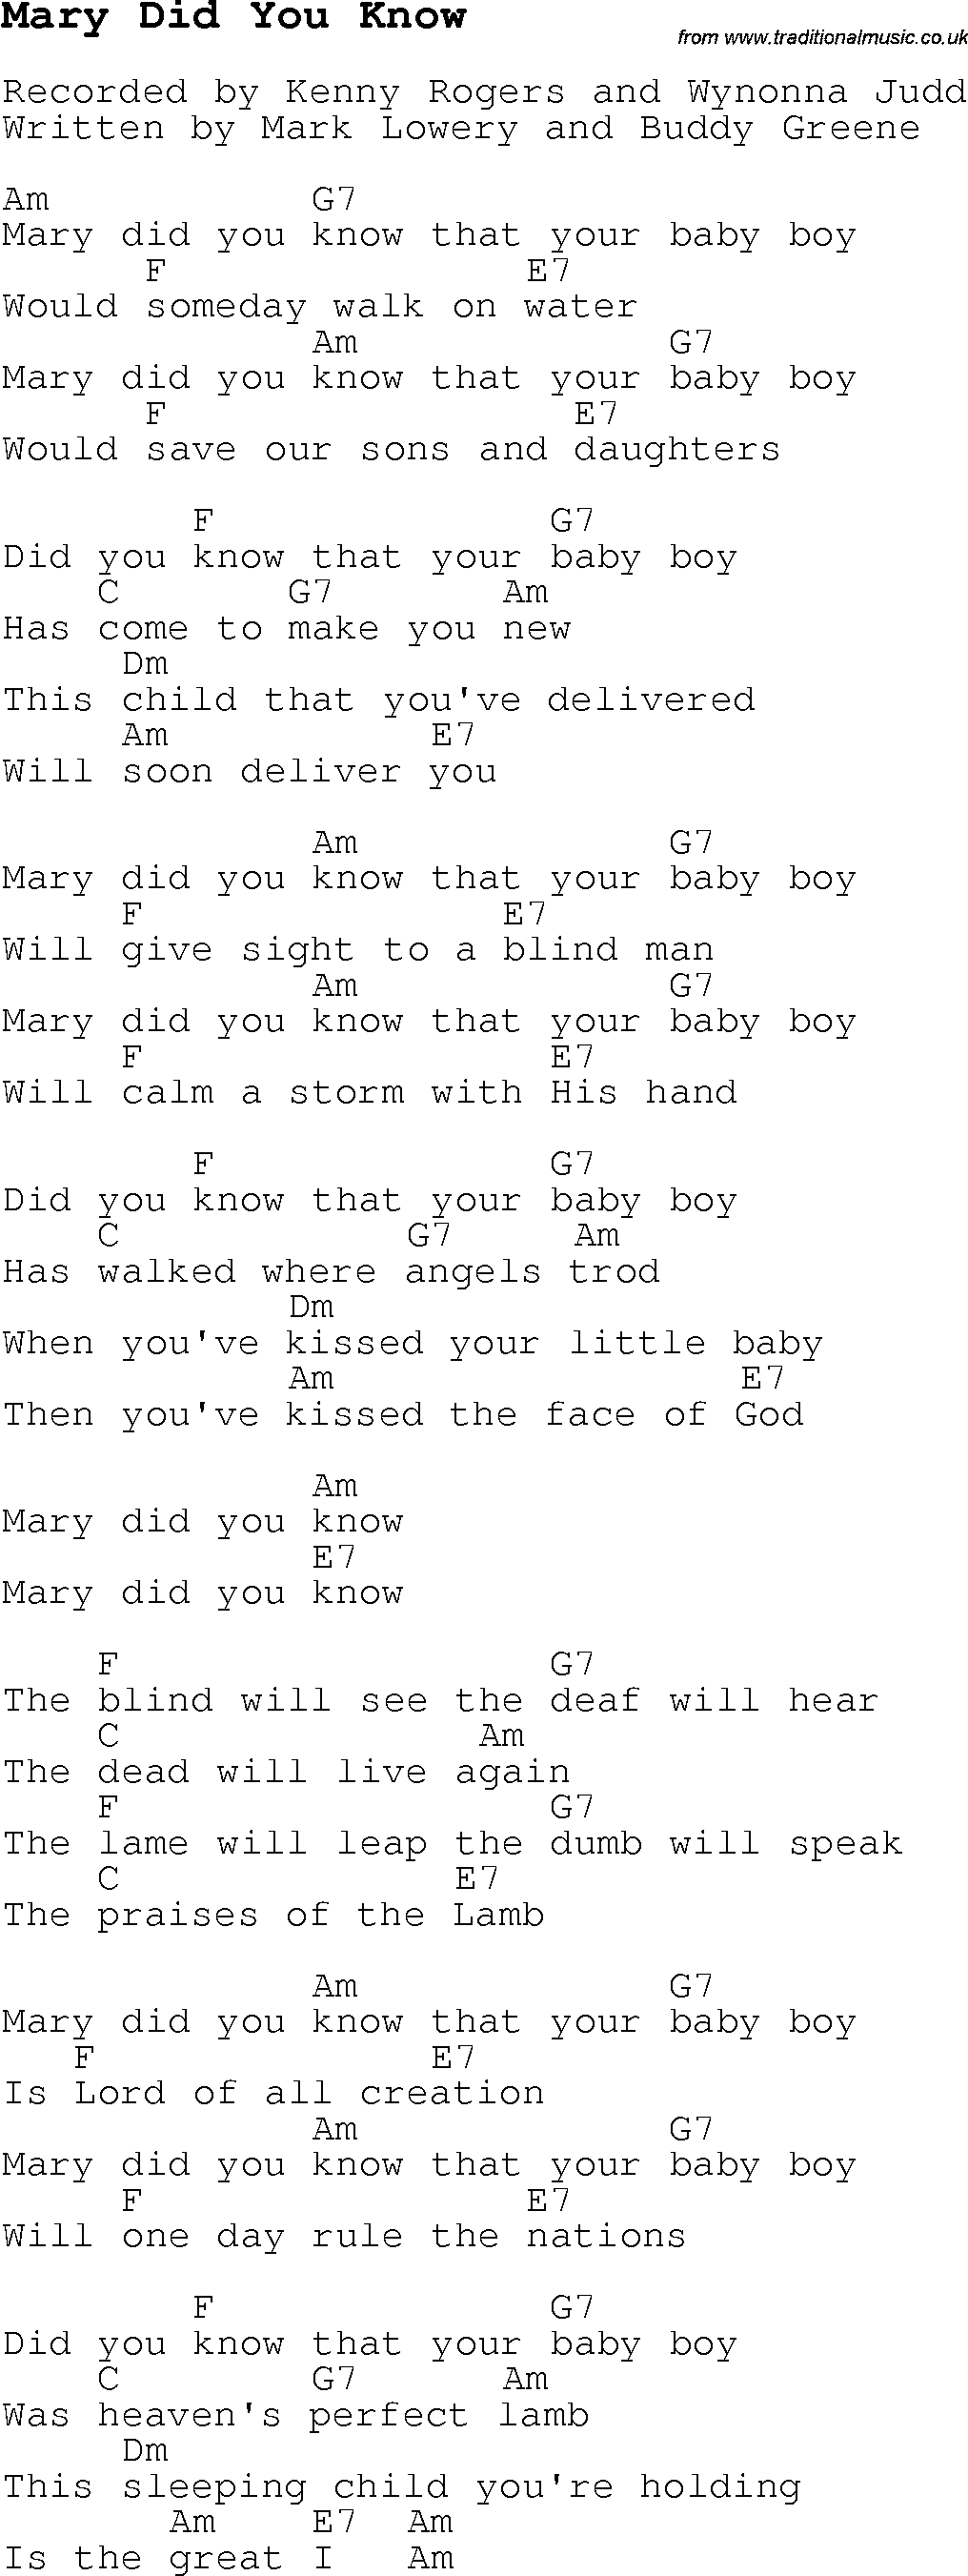 Christmas carolsong lyrics with chords for mary did you know christmas songs and carols lyrics with chords for guitar banjo for mary did you know hexwebz Images